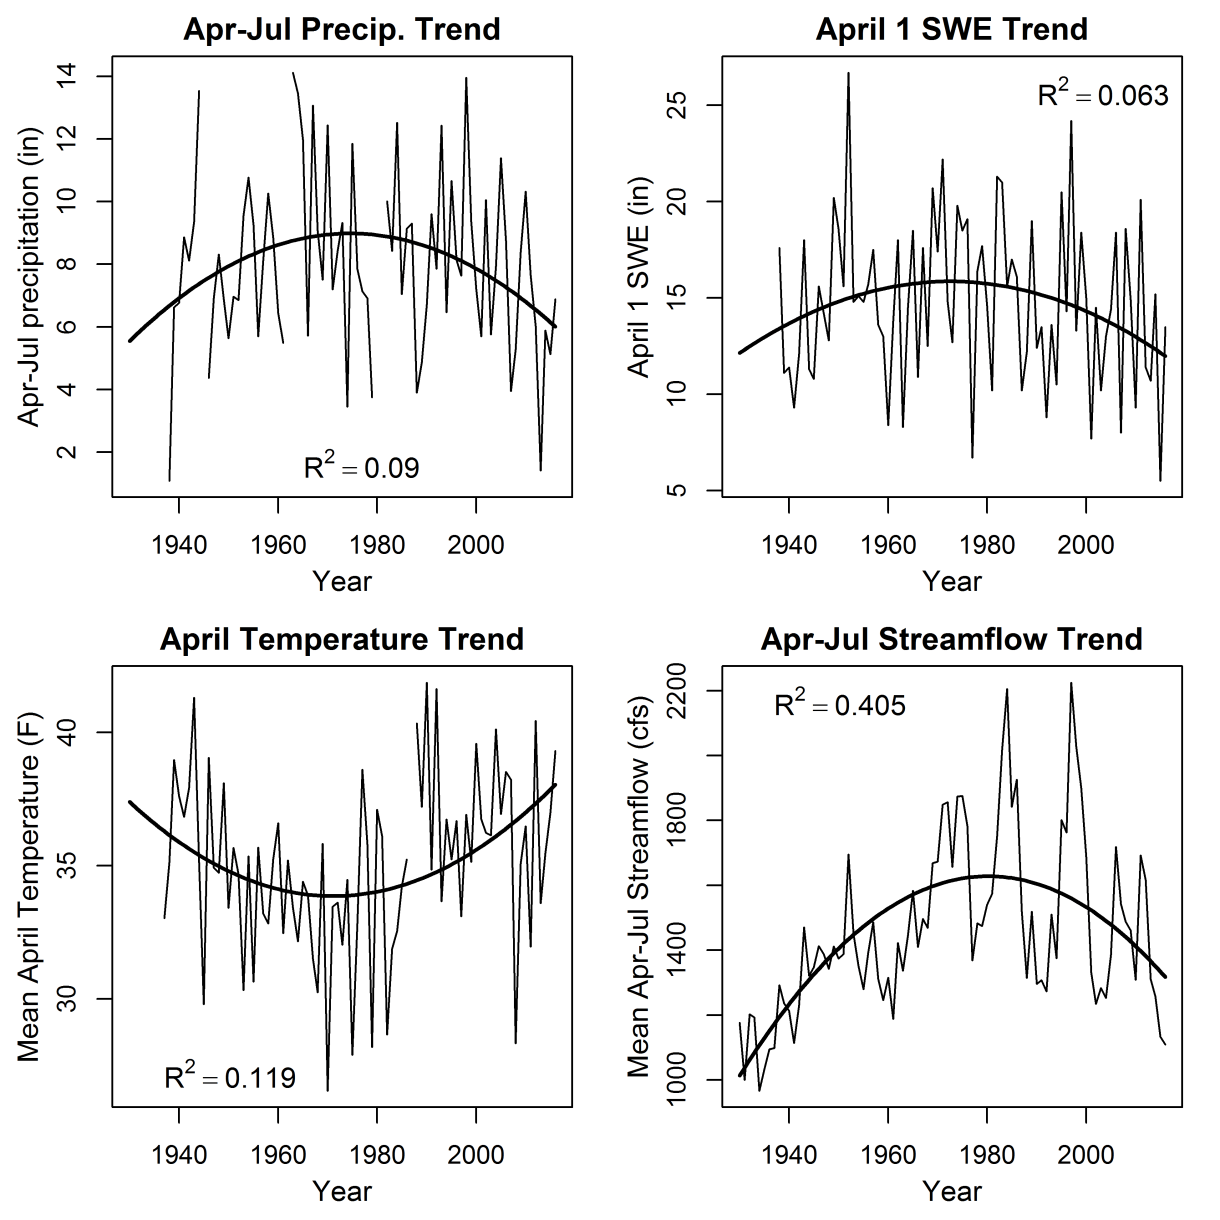 Graph of parabolic trends in spring and early summer precipitation, SWE, temperature and runoff since 1930.